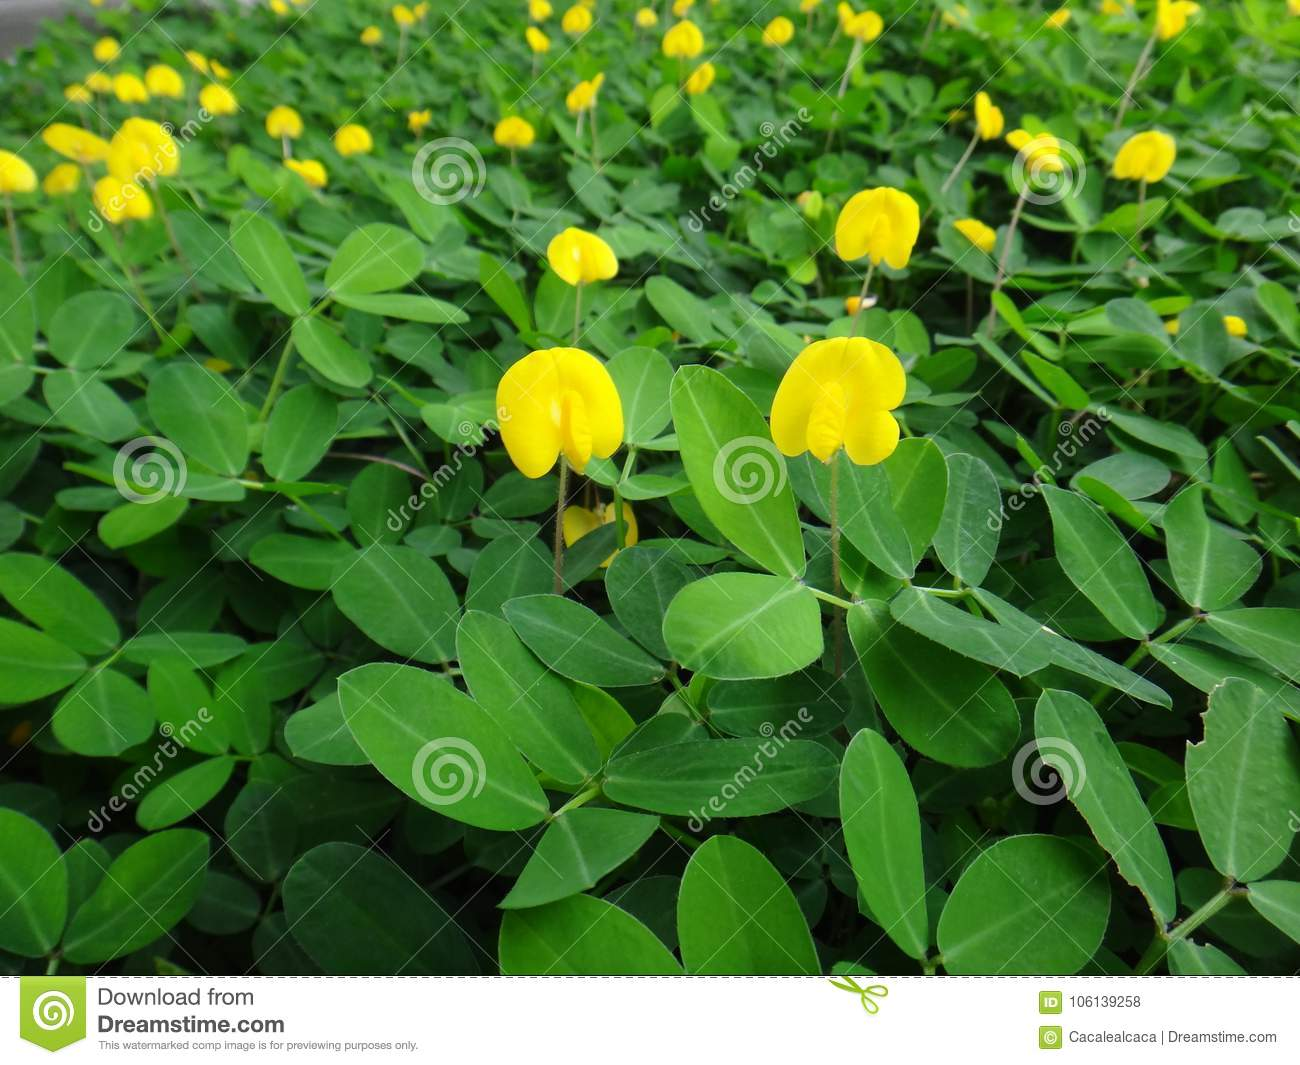 Plant Of The Creeping Peanut With Small Yellow Flowers Stock Photo